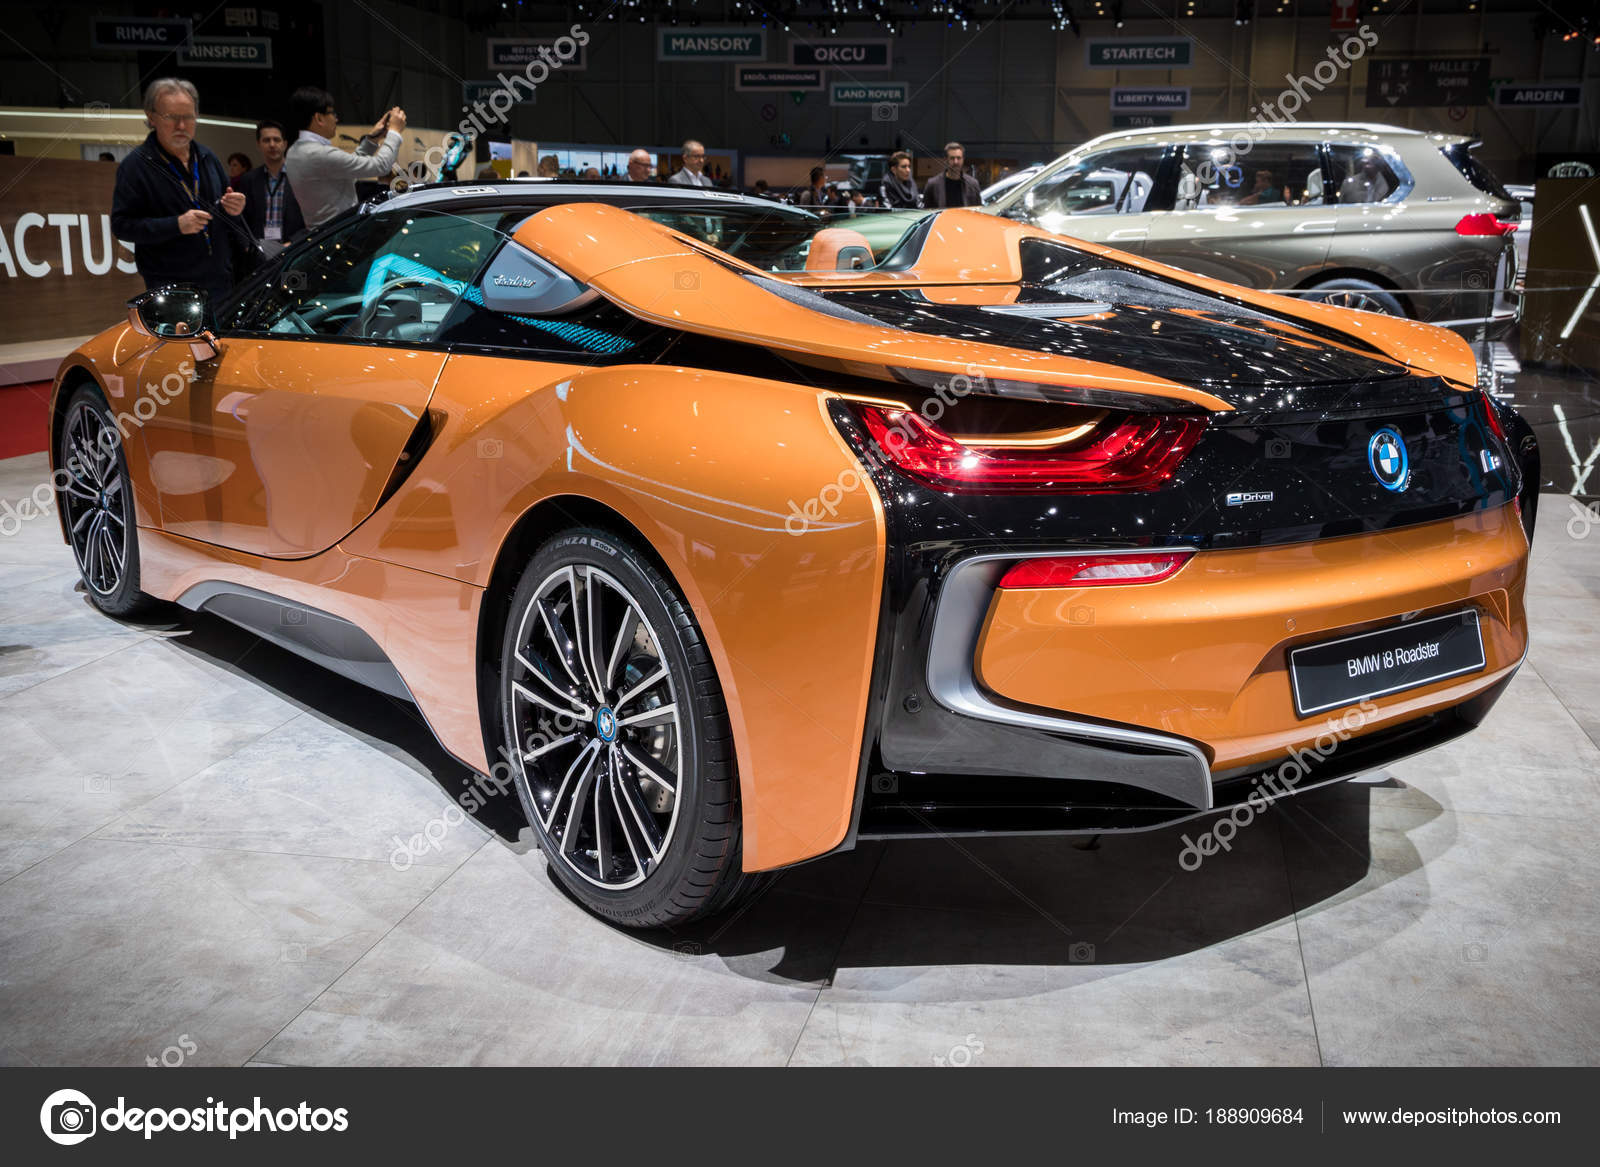 Bmw I8 Roadster Sports Car Stock Editorial Photo C Foto Vdw 188909684